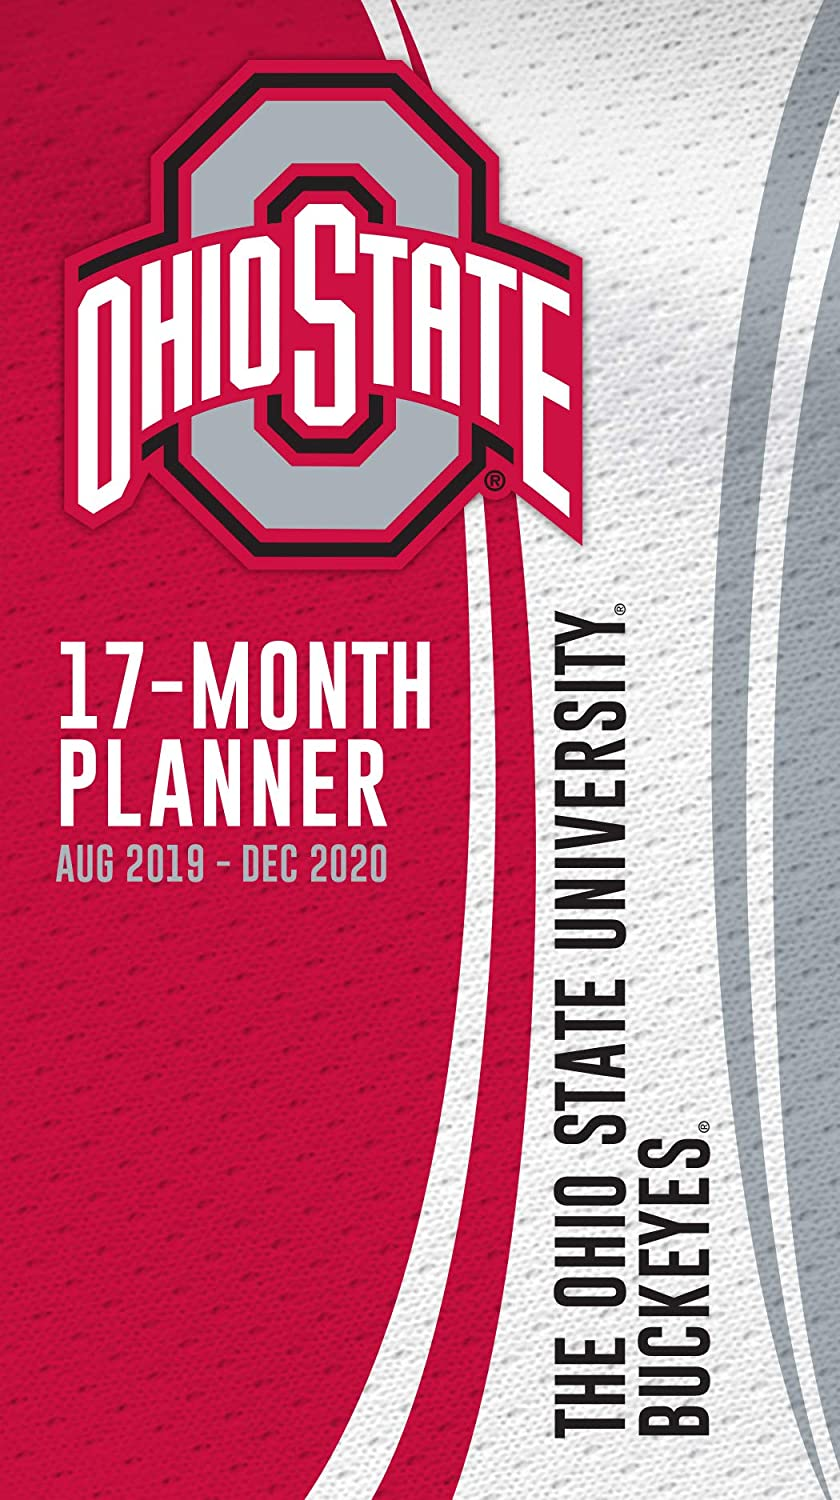 Ohio State Schedule 2020.Amazon Com 2020 Ohio State Buckeyes Pocket Planner By